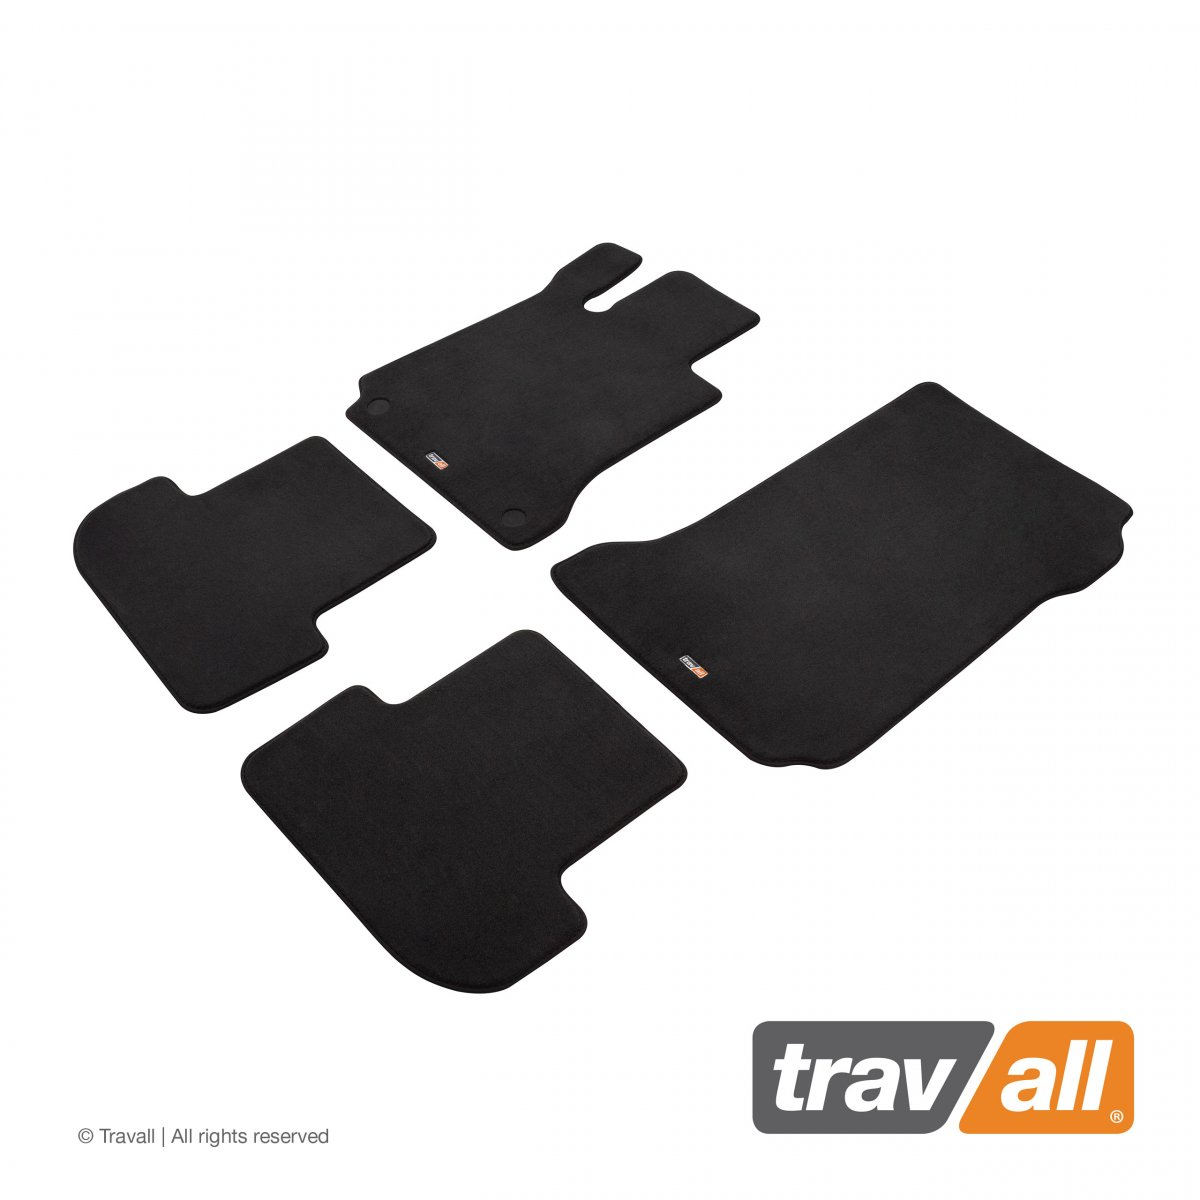 Travall® MATS [LHD] für Mercedes Benz E-Class Coupé [MANUAL] (2013 - 2017)